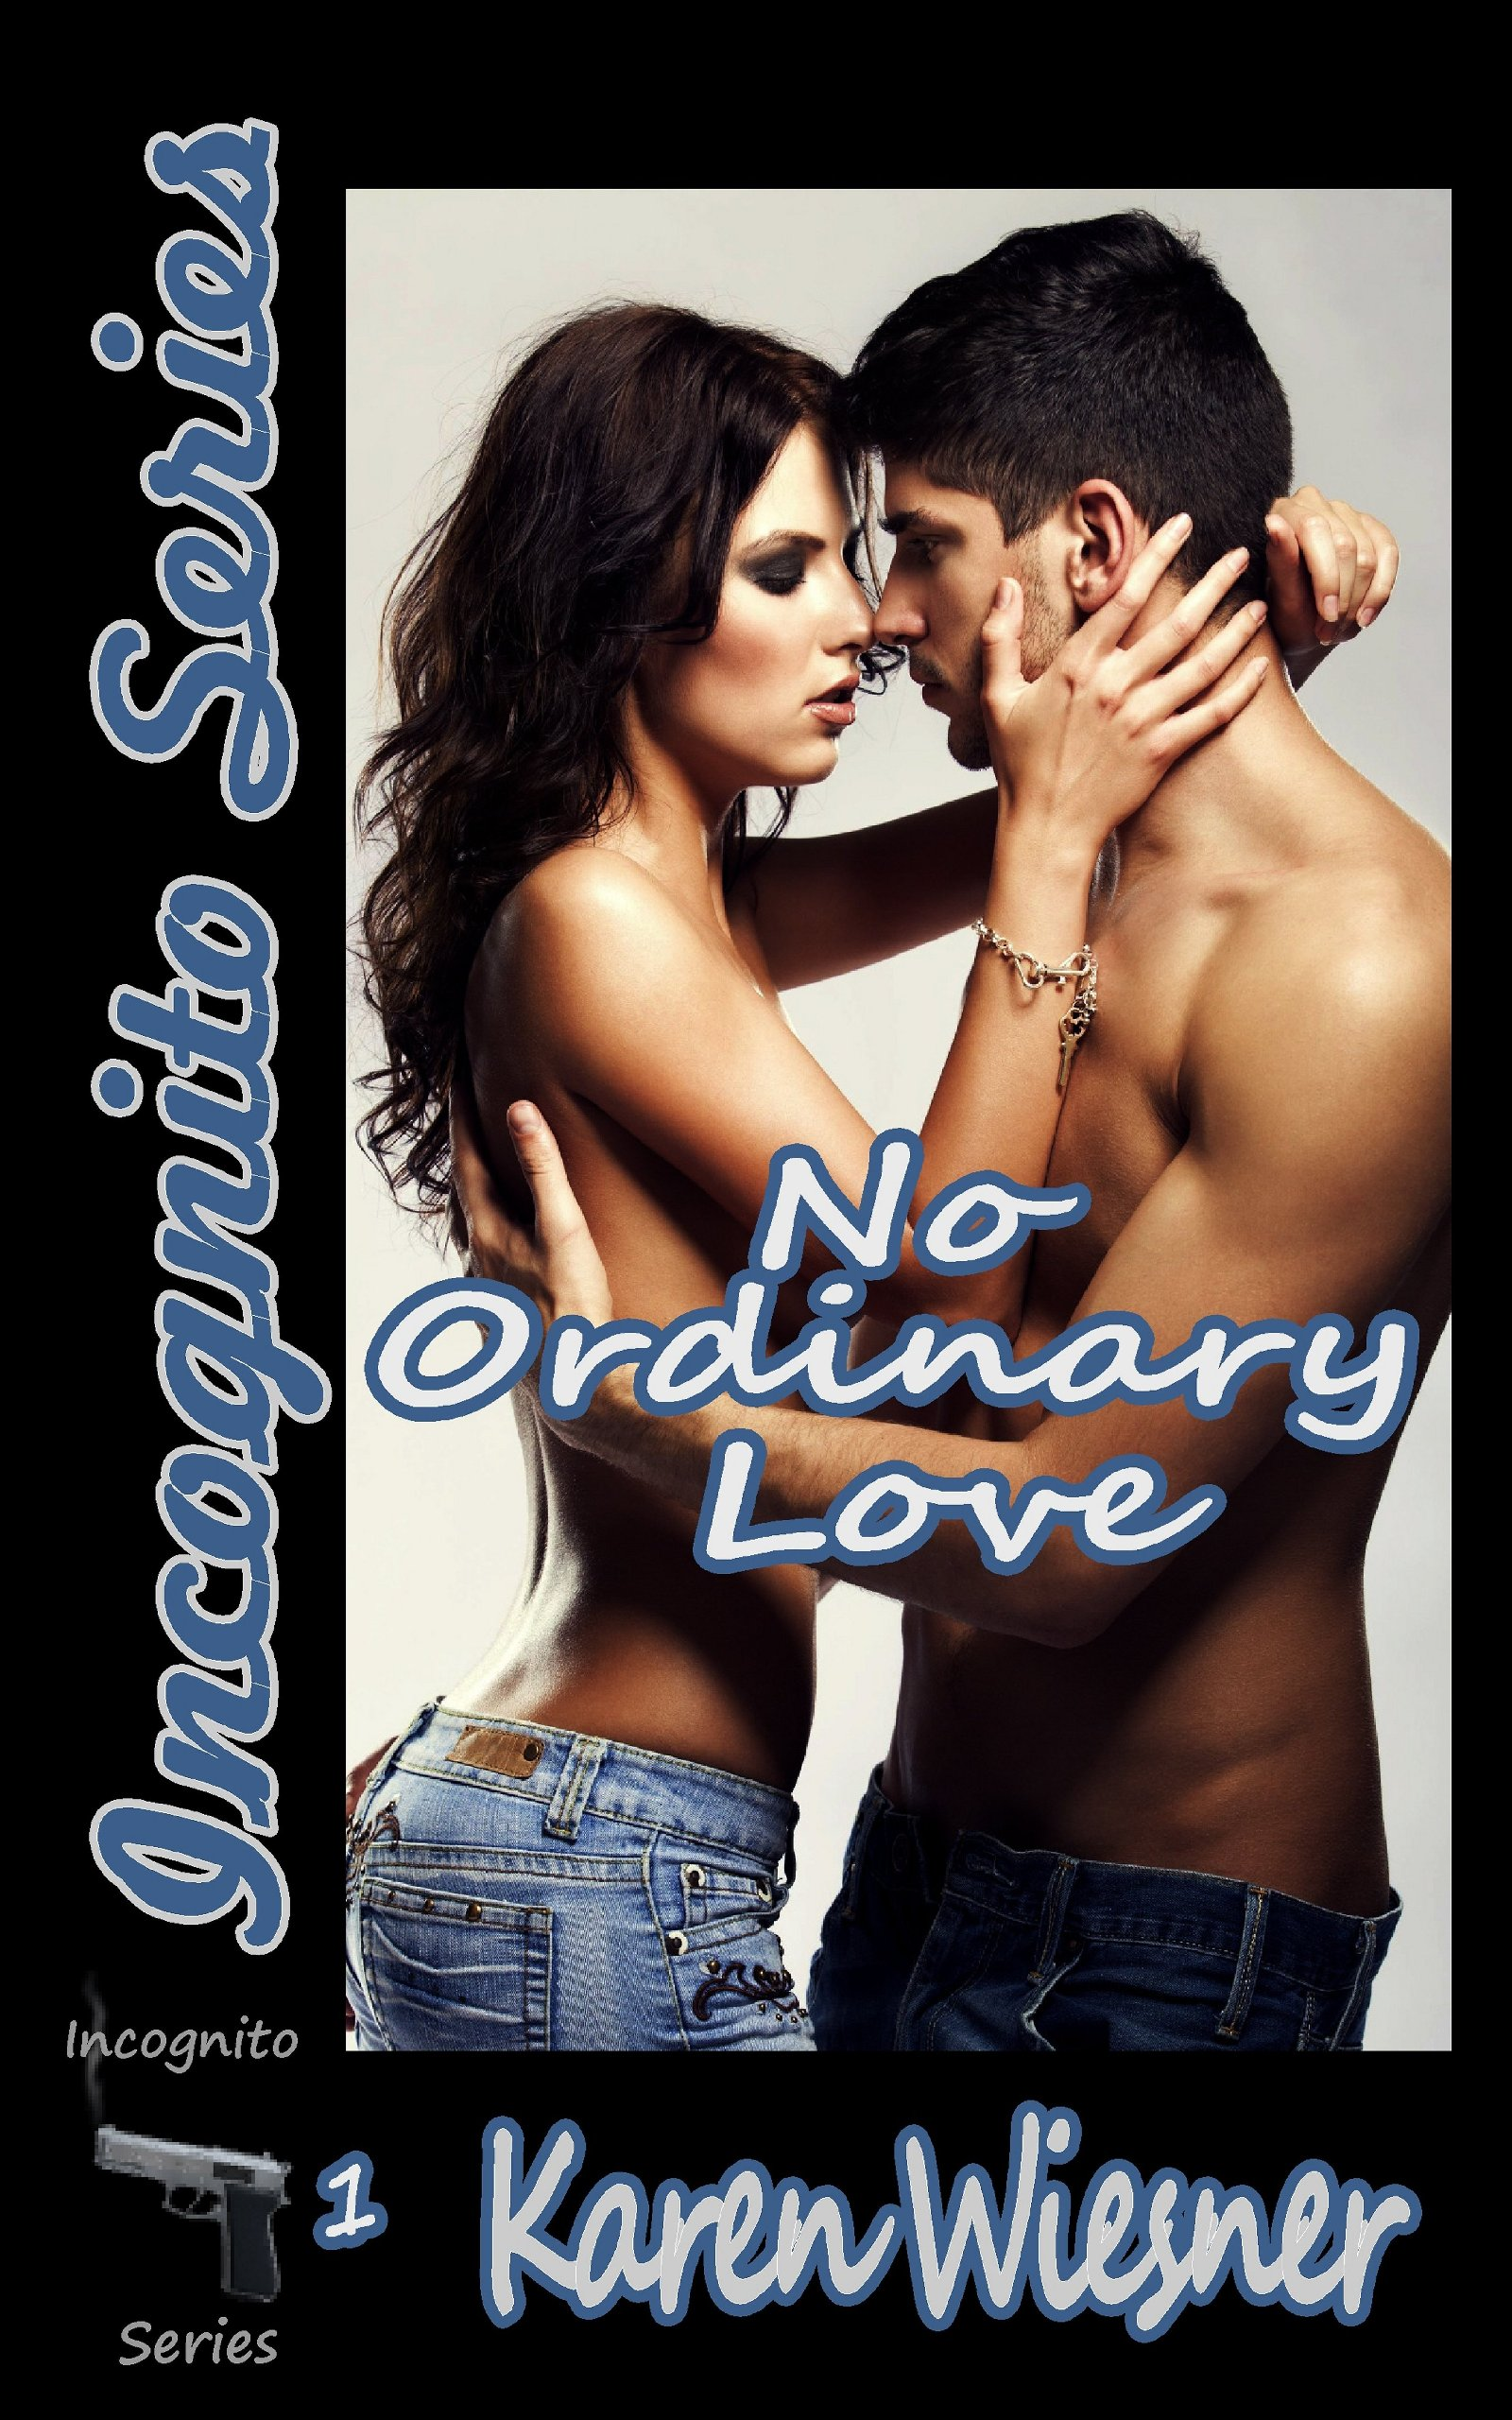 Karen Wiesner - No Ordinary Love, Book 1 of the Incognito Series